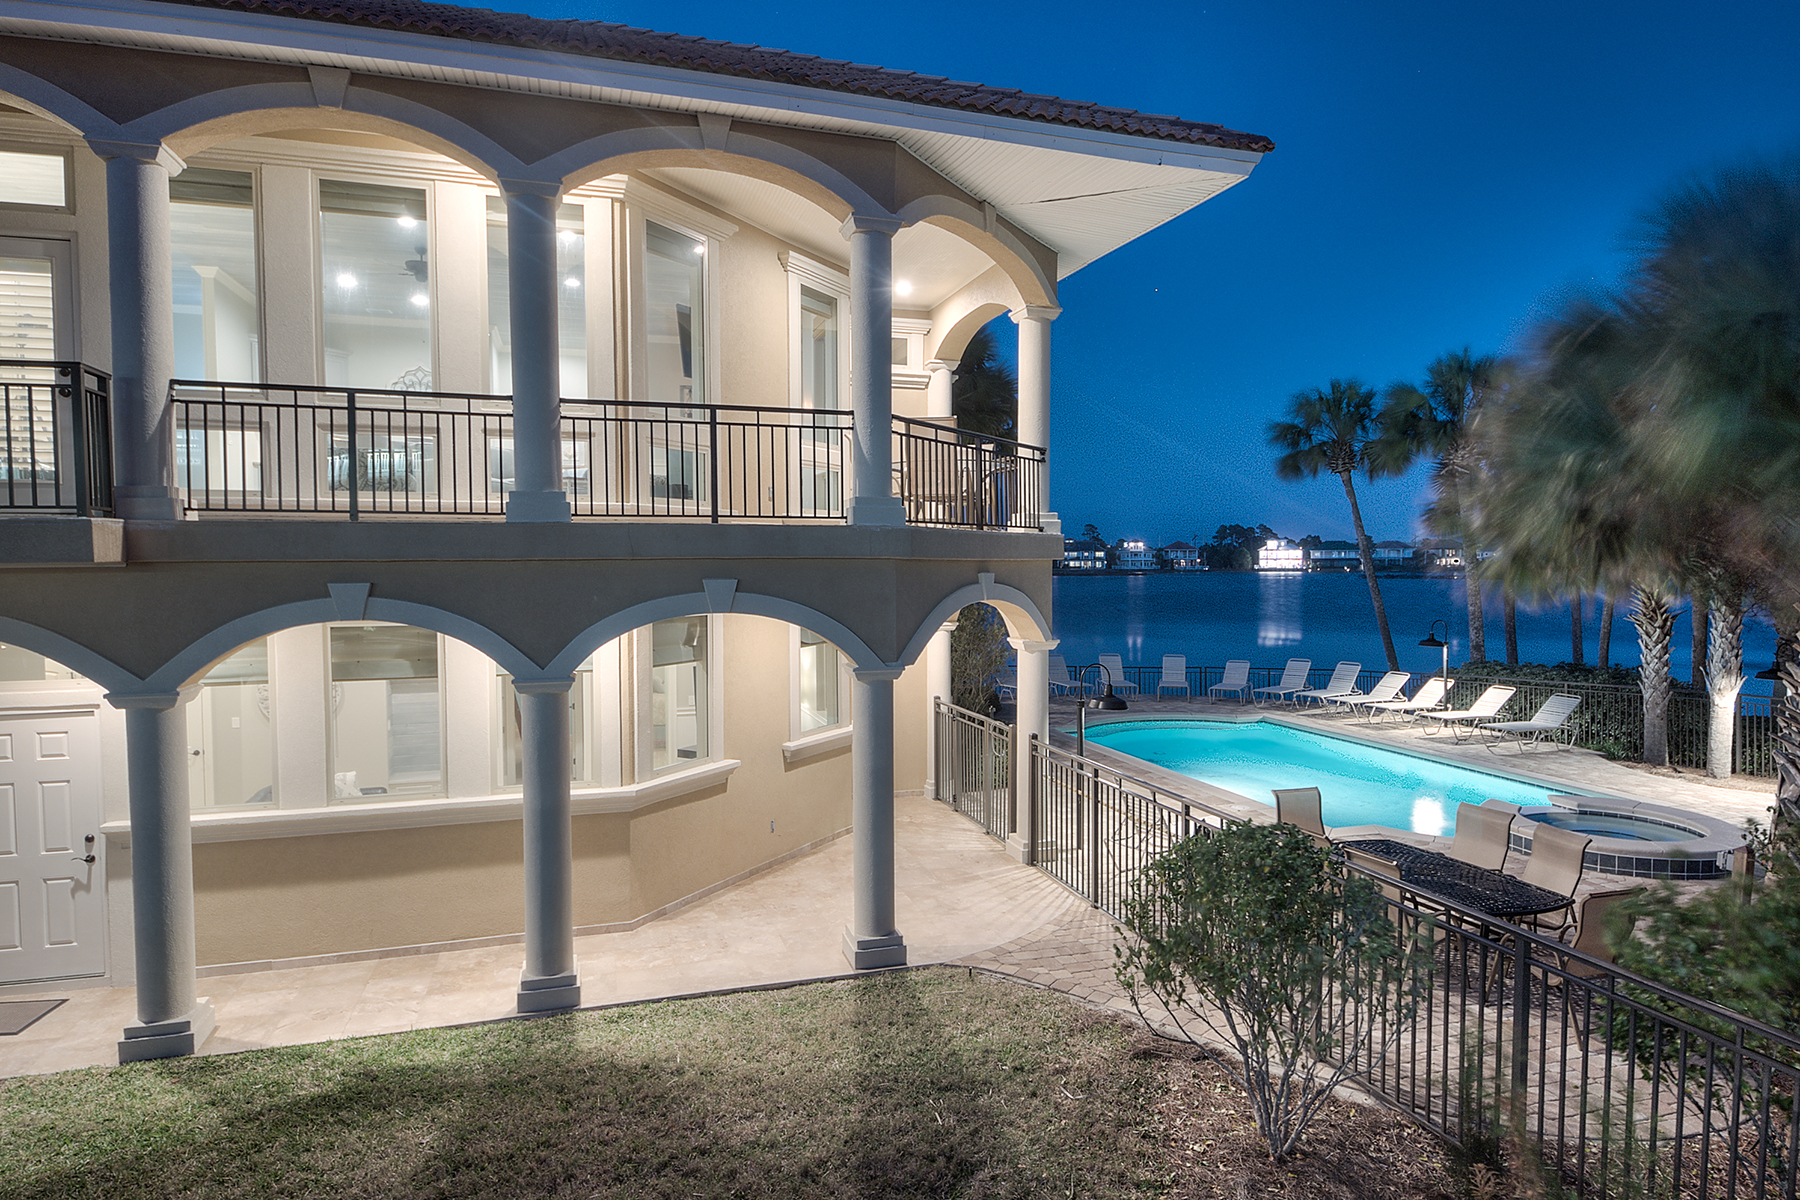 Maison unifamiliale pour l Vente à LAKEFRONT MEDITERRANEAN WITH GULF VIEW 4664 Destiny Way Destin, Florida, 32541 États-Unis